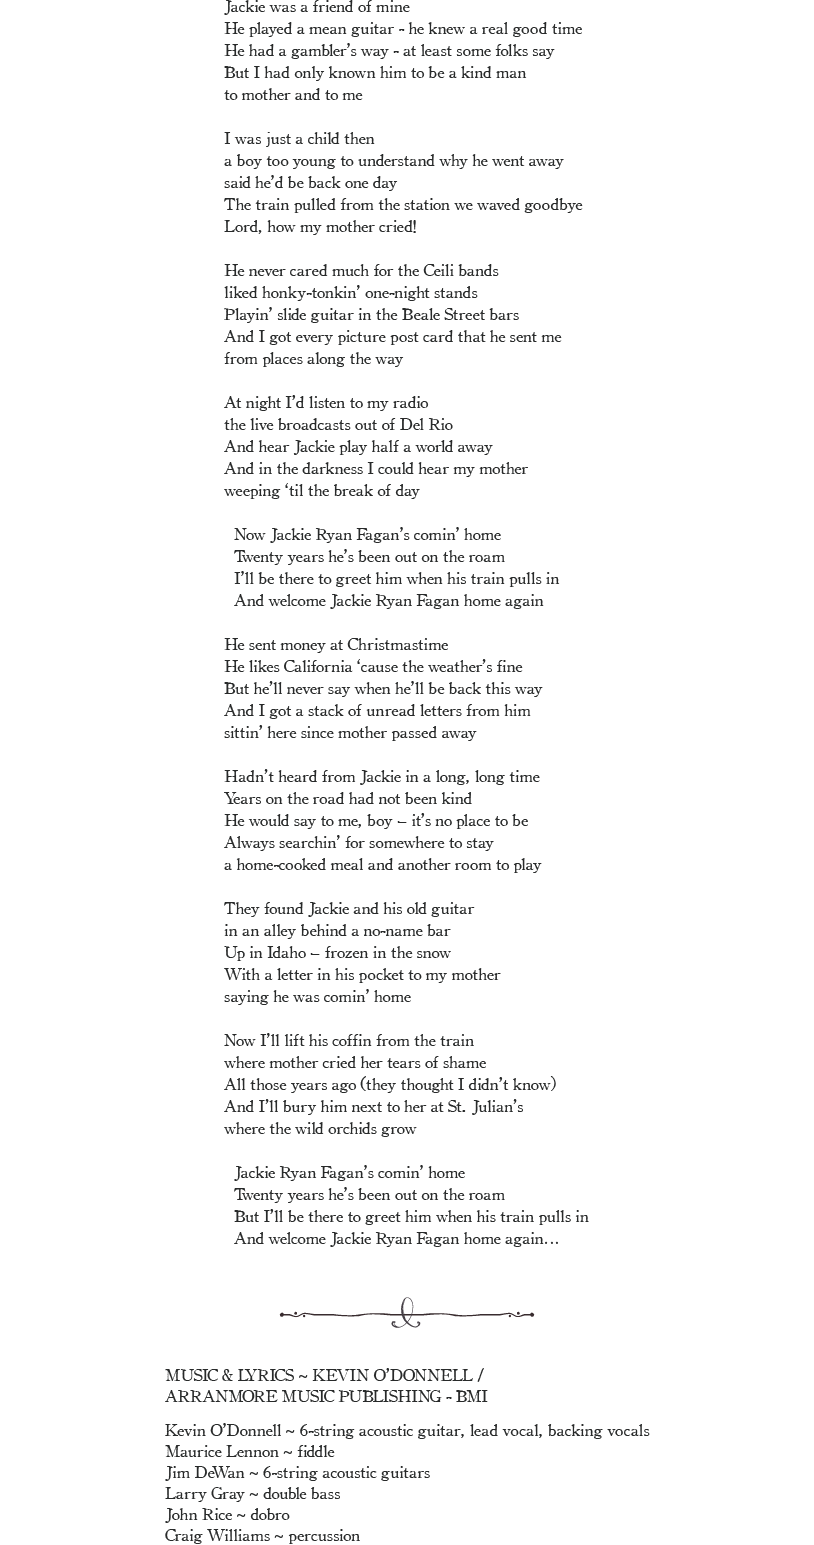 Ballad of Jackie Ryan Fagan Lyrics